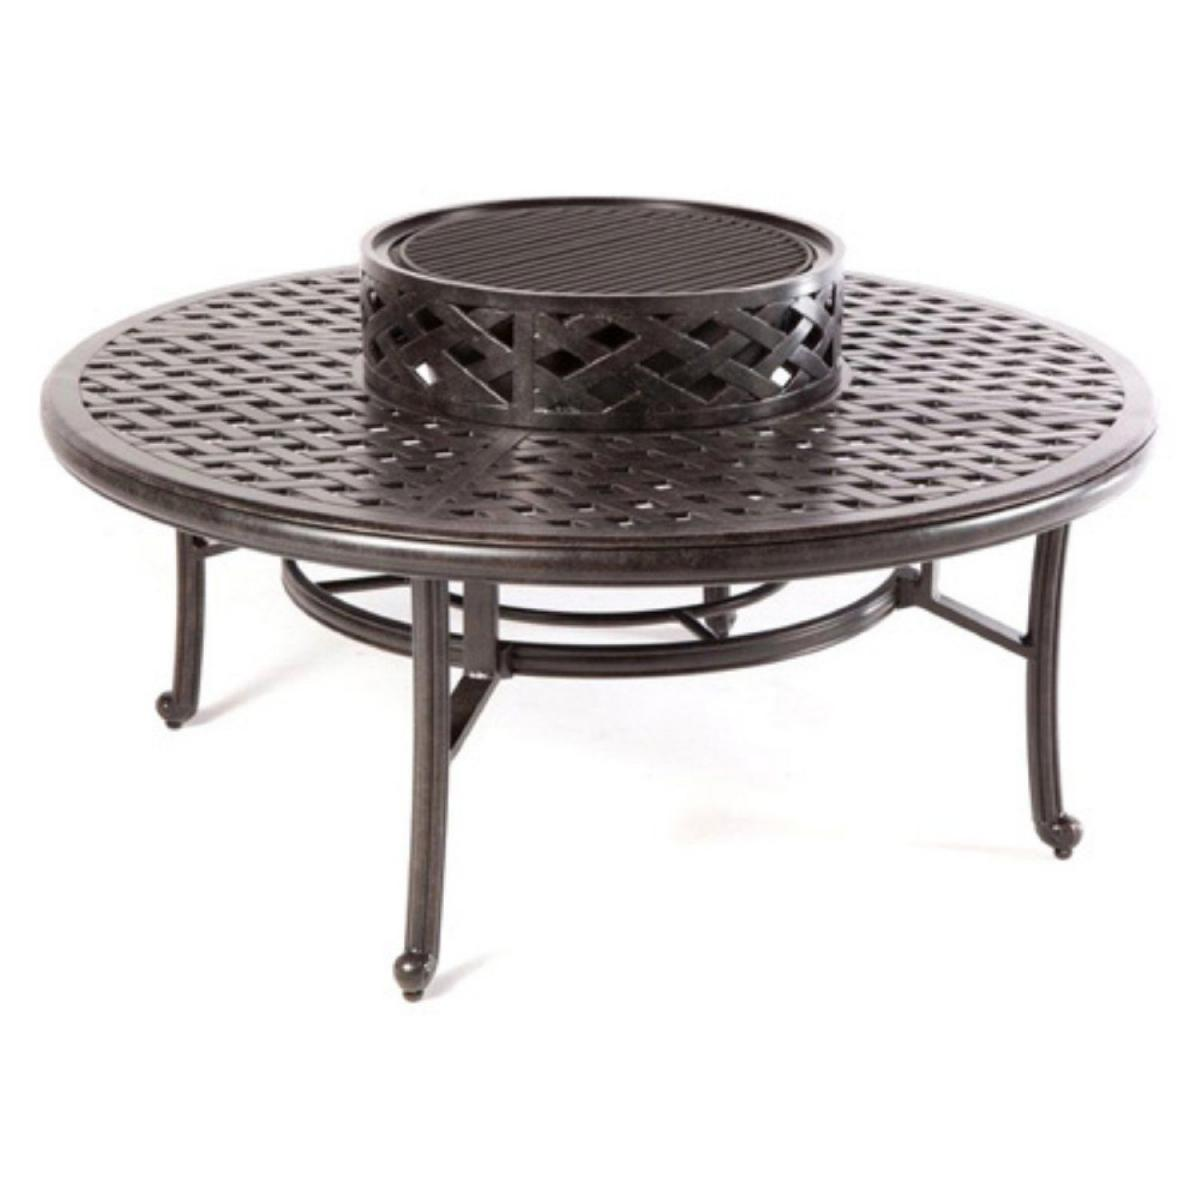 Patio Table Nassua Darlee Outdoor Cast Aluminum 52 Ice Tea Fire